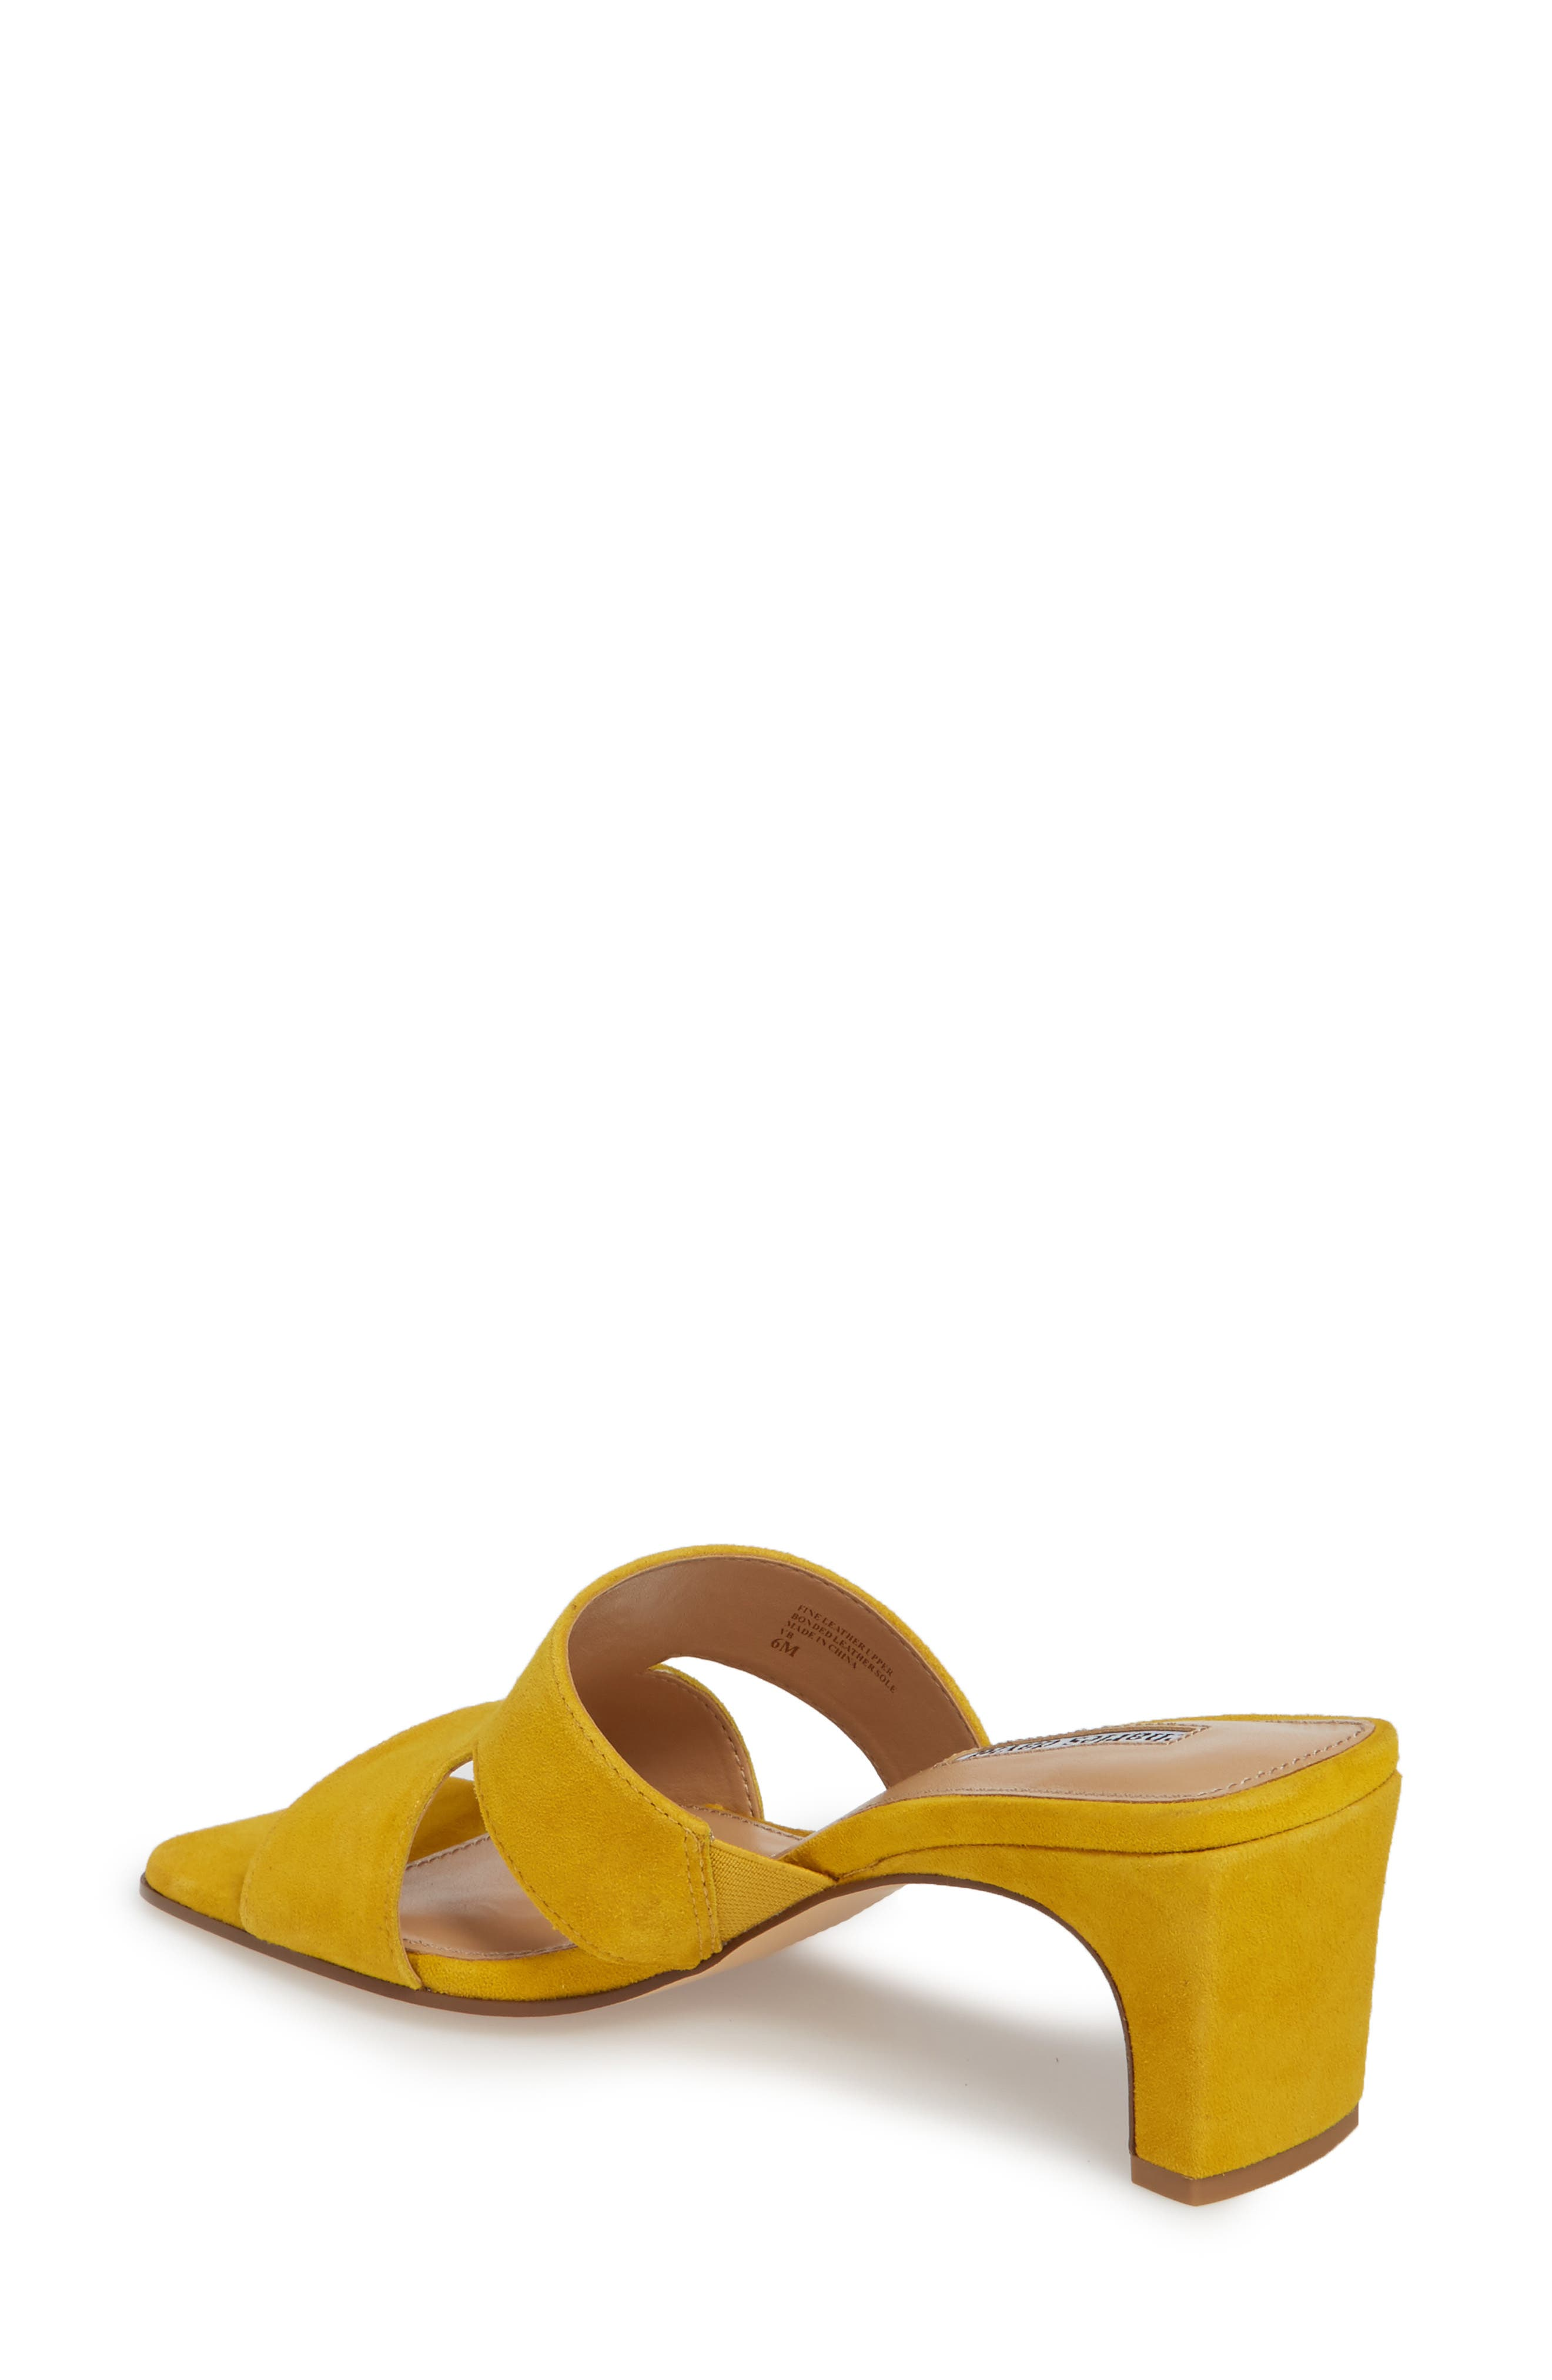 Harley Slide Sandal,                             Alternate thumbnail 2, color,                             Bright Yellow Suede